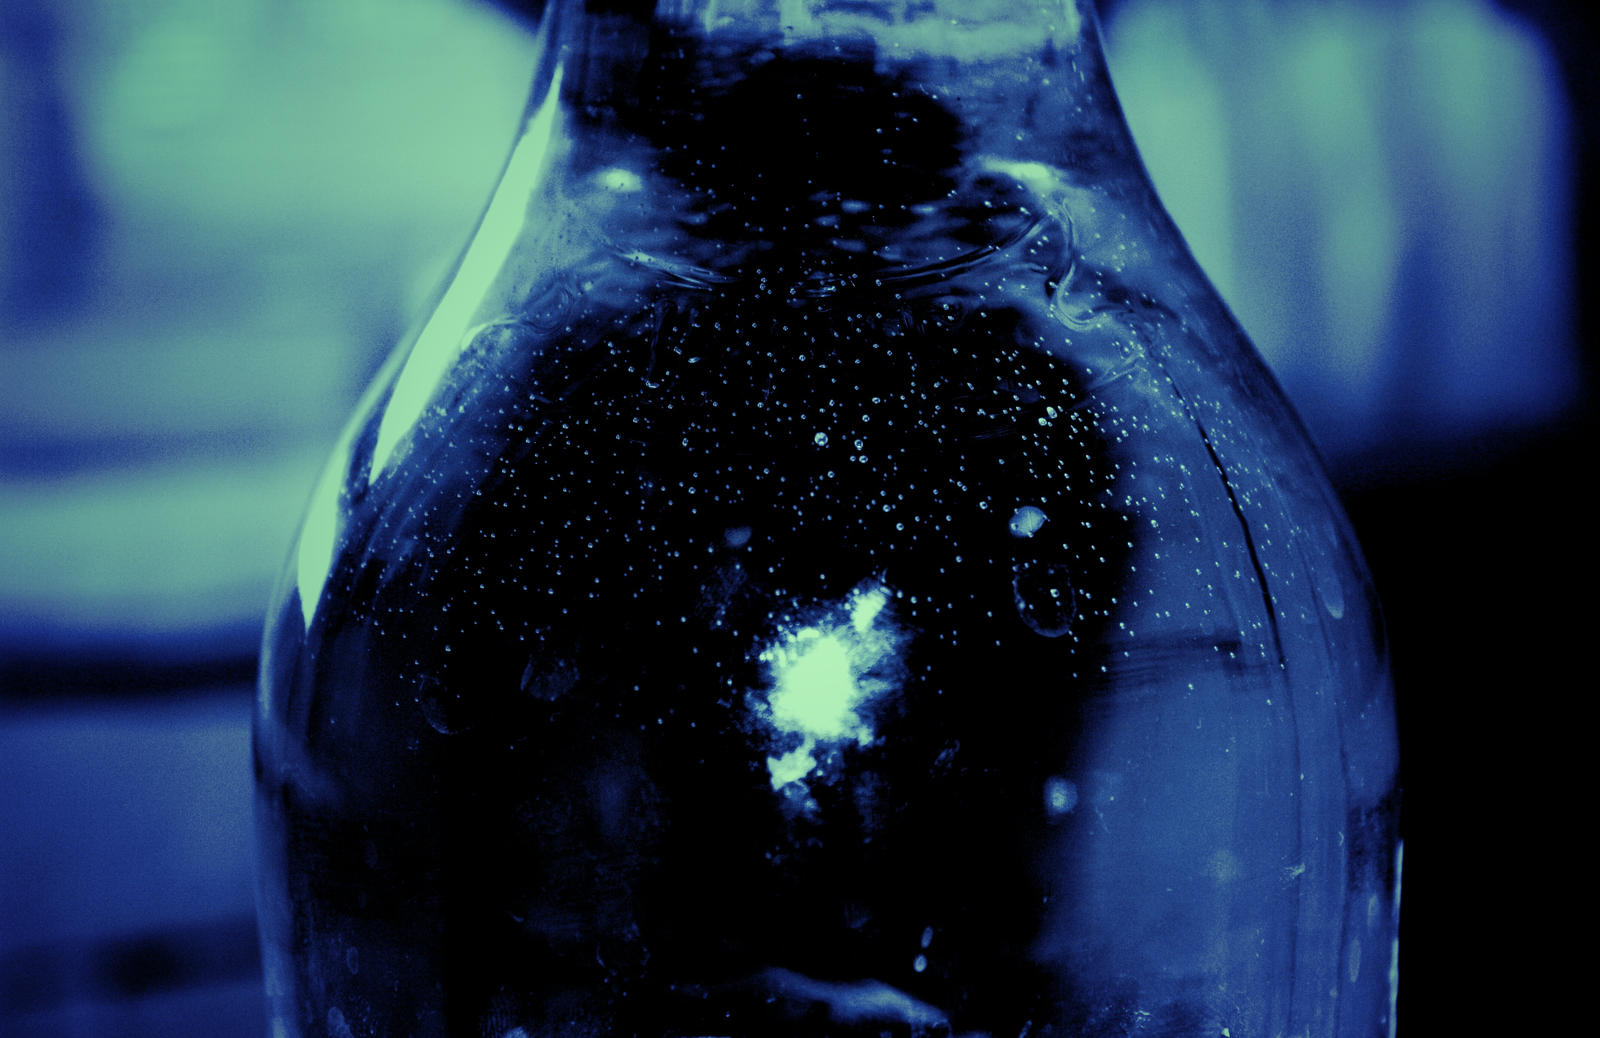 A small universe in a bottle